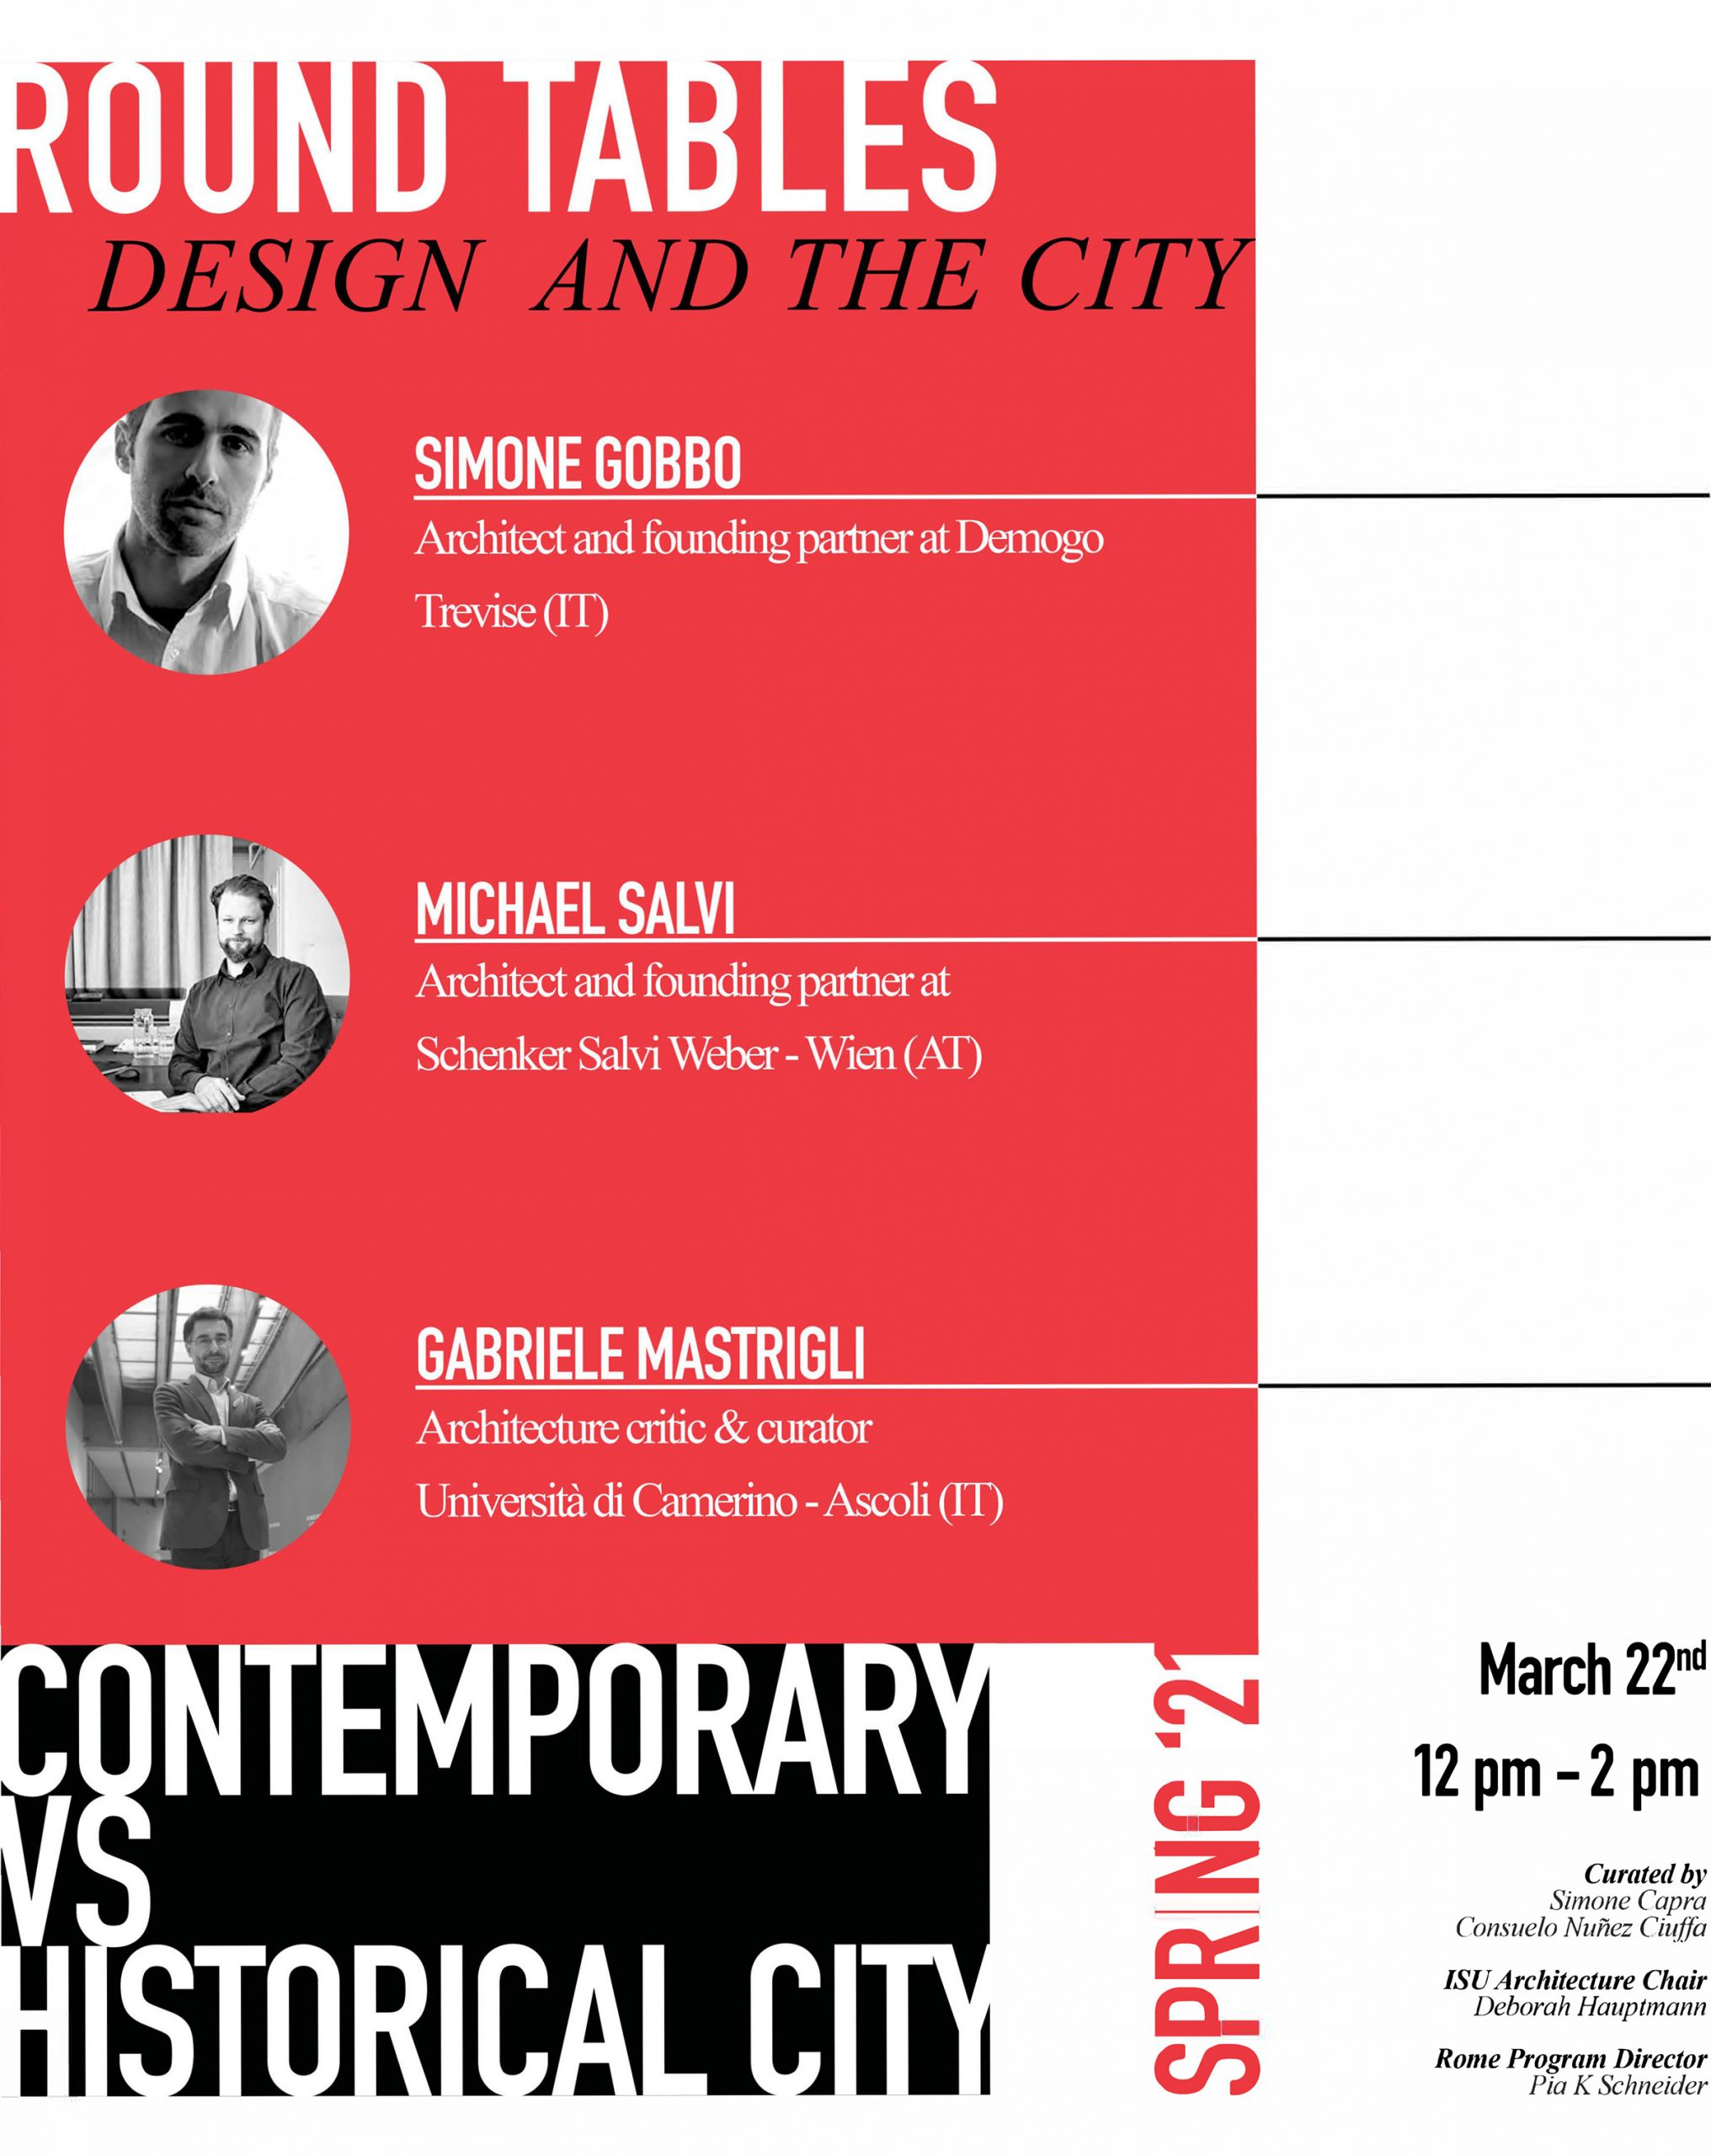 Design and the City Round Tables Session II